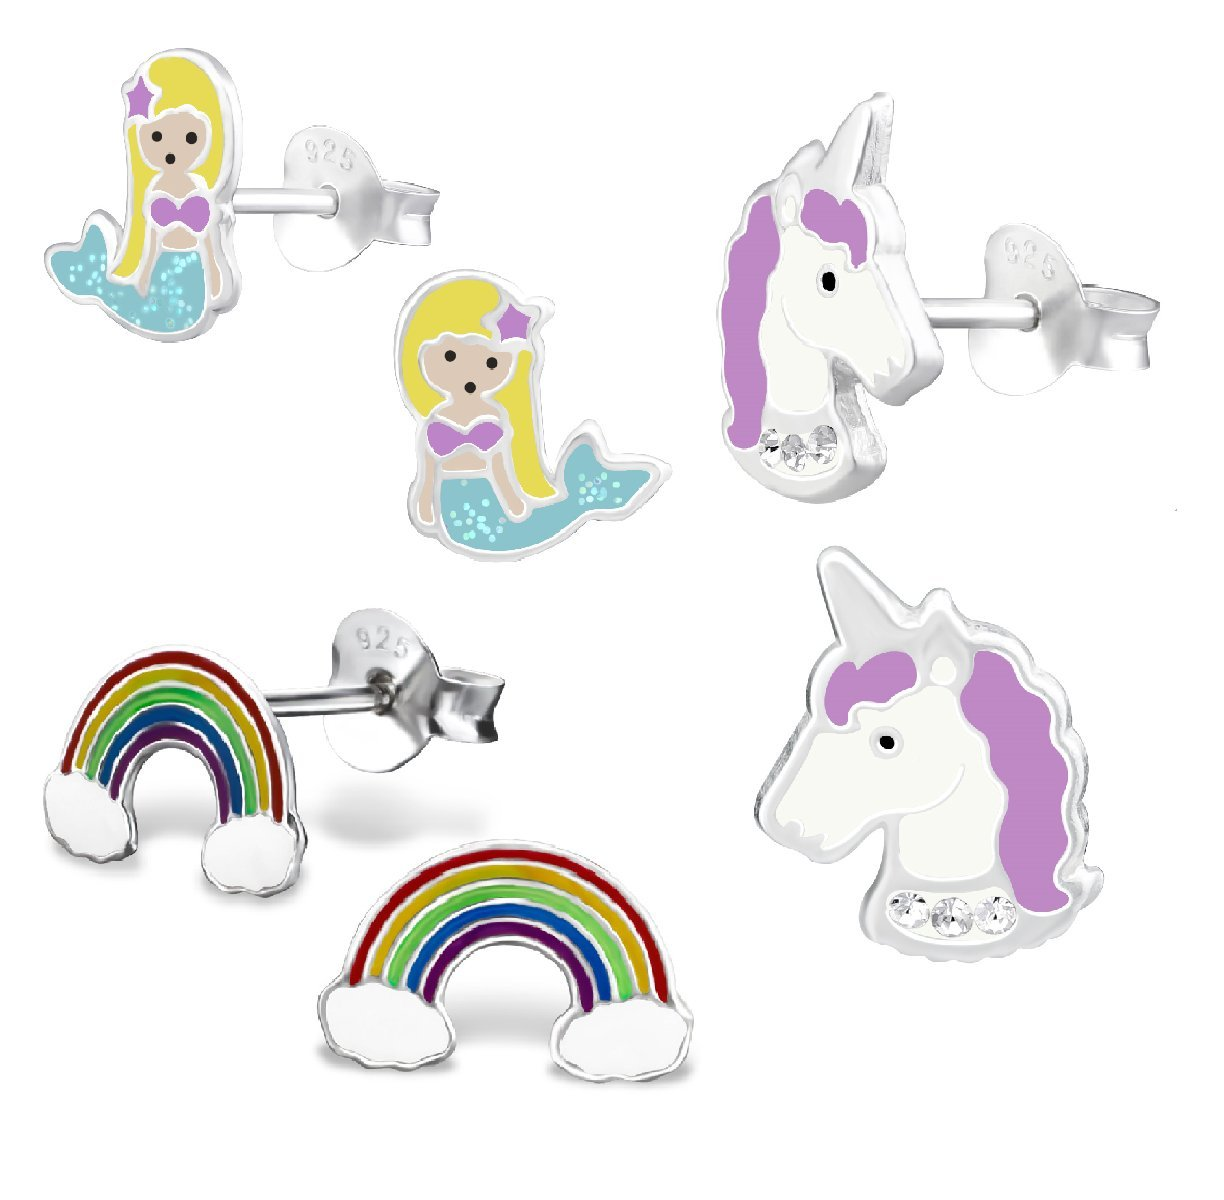 925 Sterling Silver Hypoallergenic Set of 3 Pairs Mermaid, Purple Unicorn, & Rainbow Stud Earrings for Girls (Nickel Free)